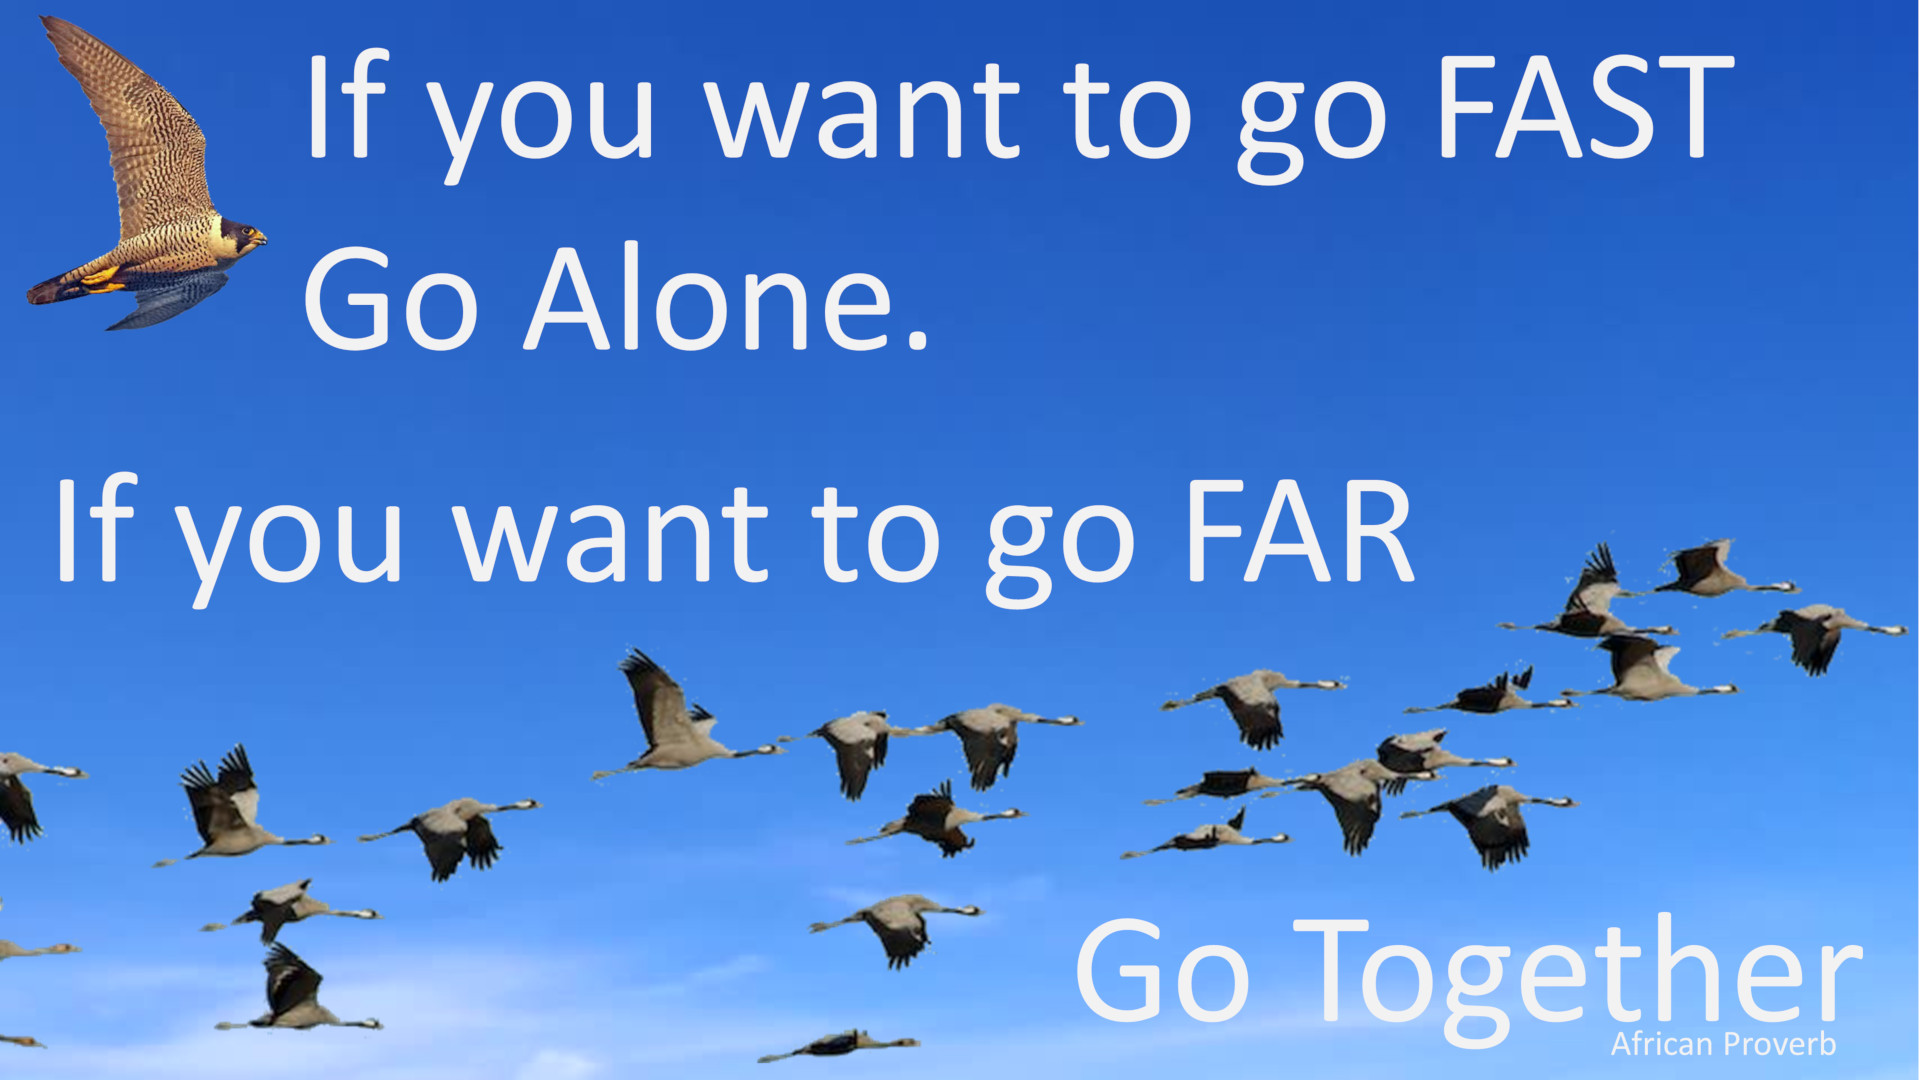 If you want to go Fast, go Alone. If you want to go Far, go Together